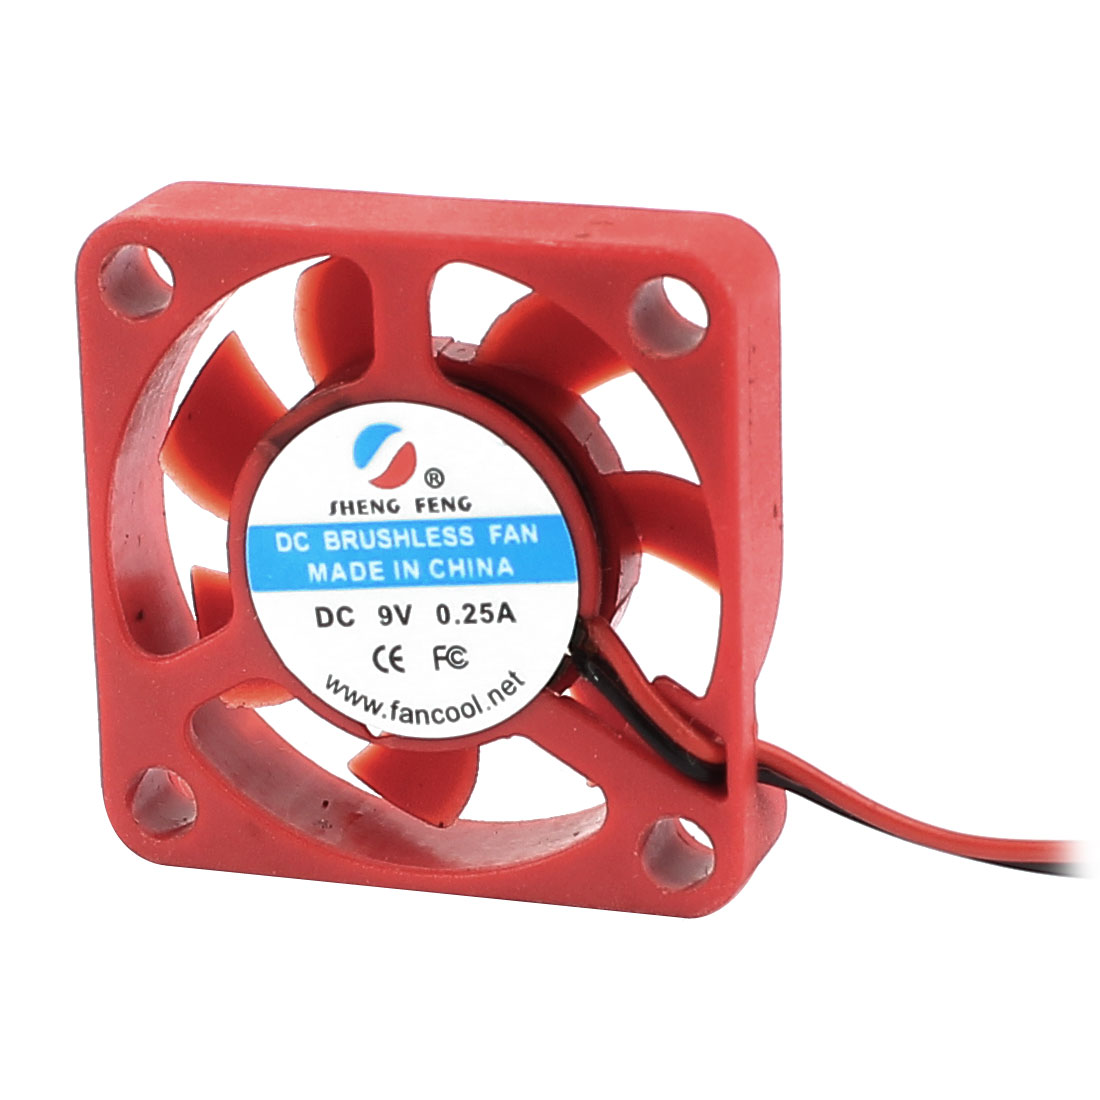 DC 9V 0.25A Red Plastic 7 Flabellums 2 Terminals Connector 3cm CPU Cooling Fan Cooler